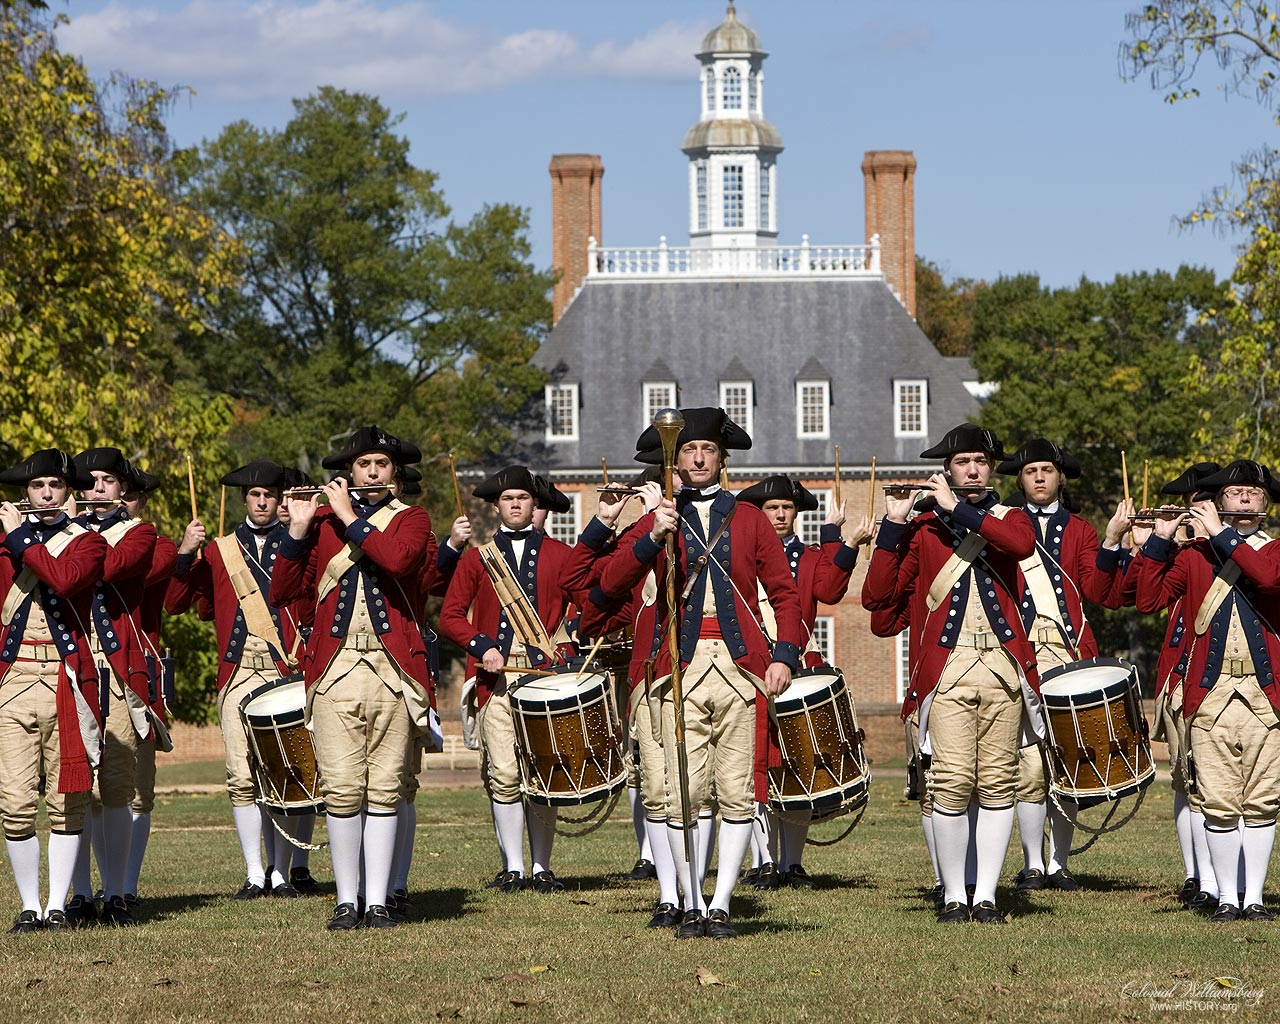 Fife & Drum Corps with Lance.jpg